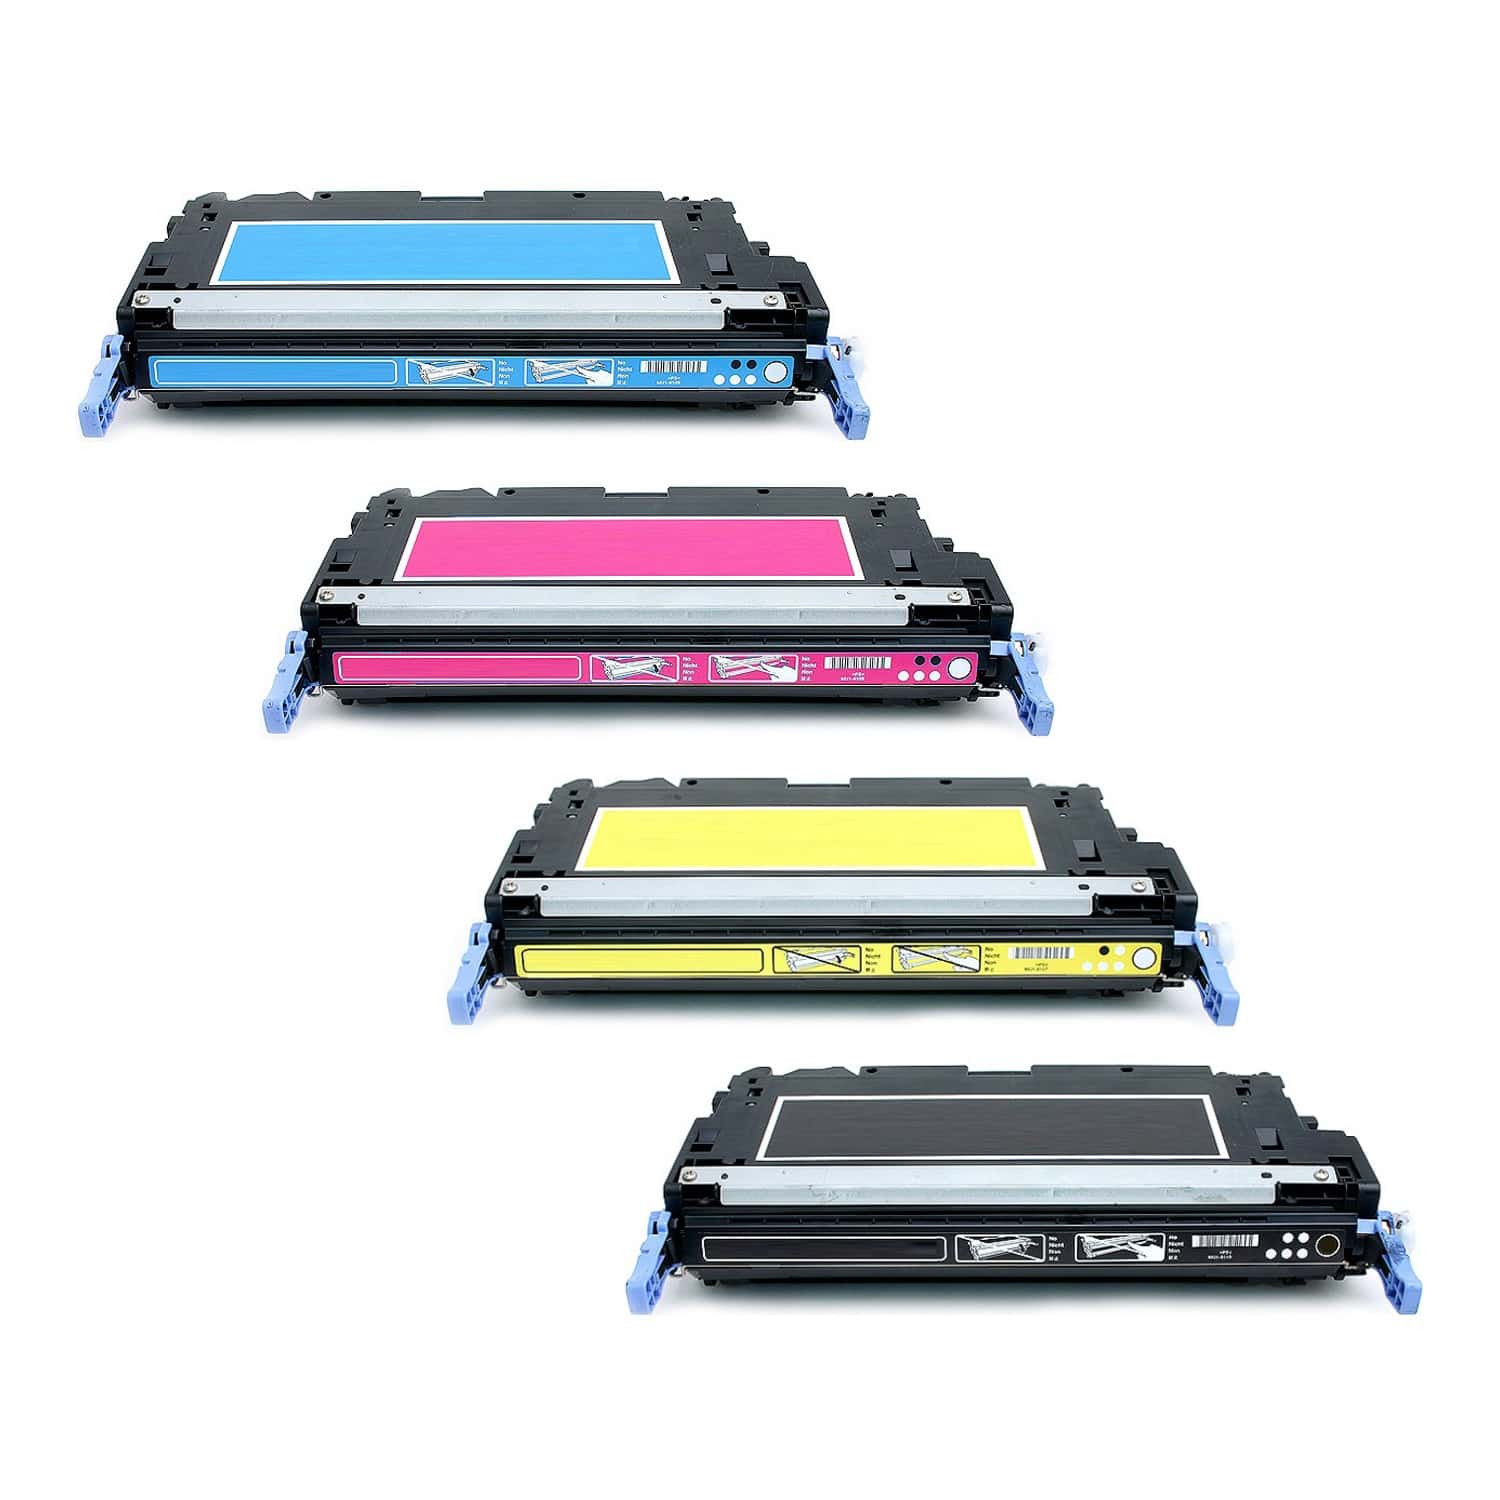 Remanufactured HP Toner Cartridge Bundlpack 502A-501A CMYK Pack - 4 Cartridges